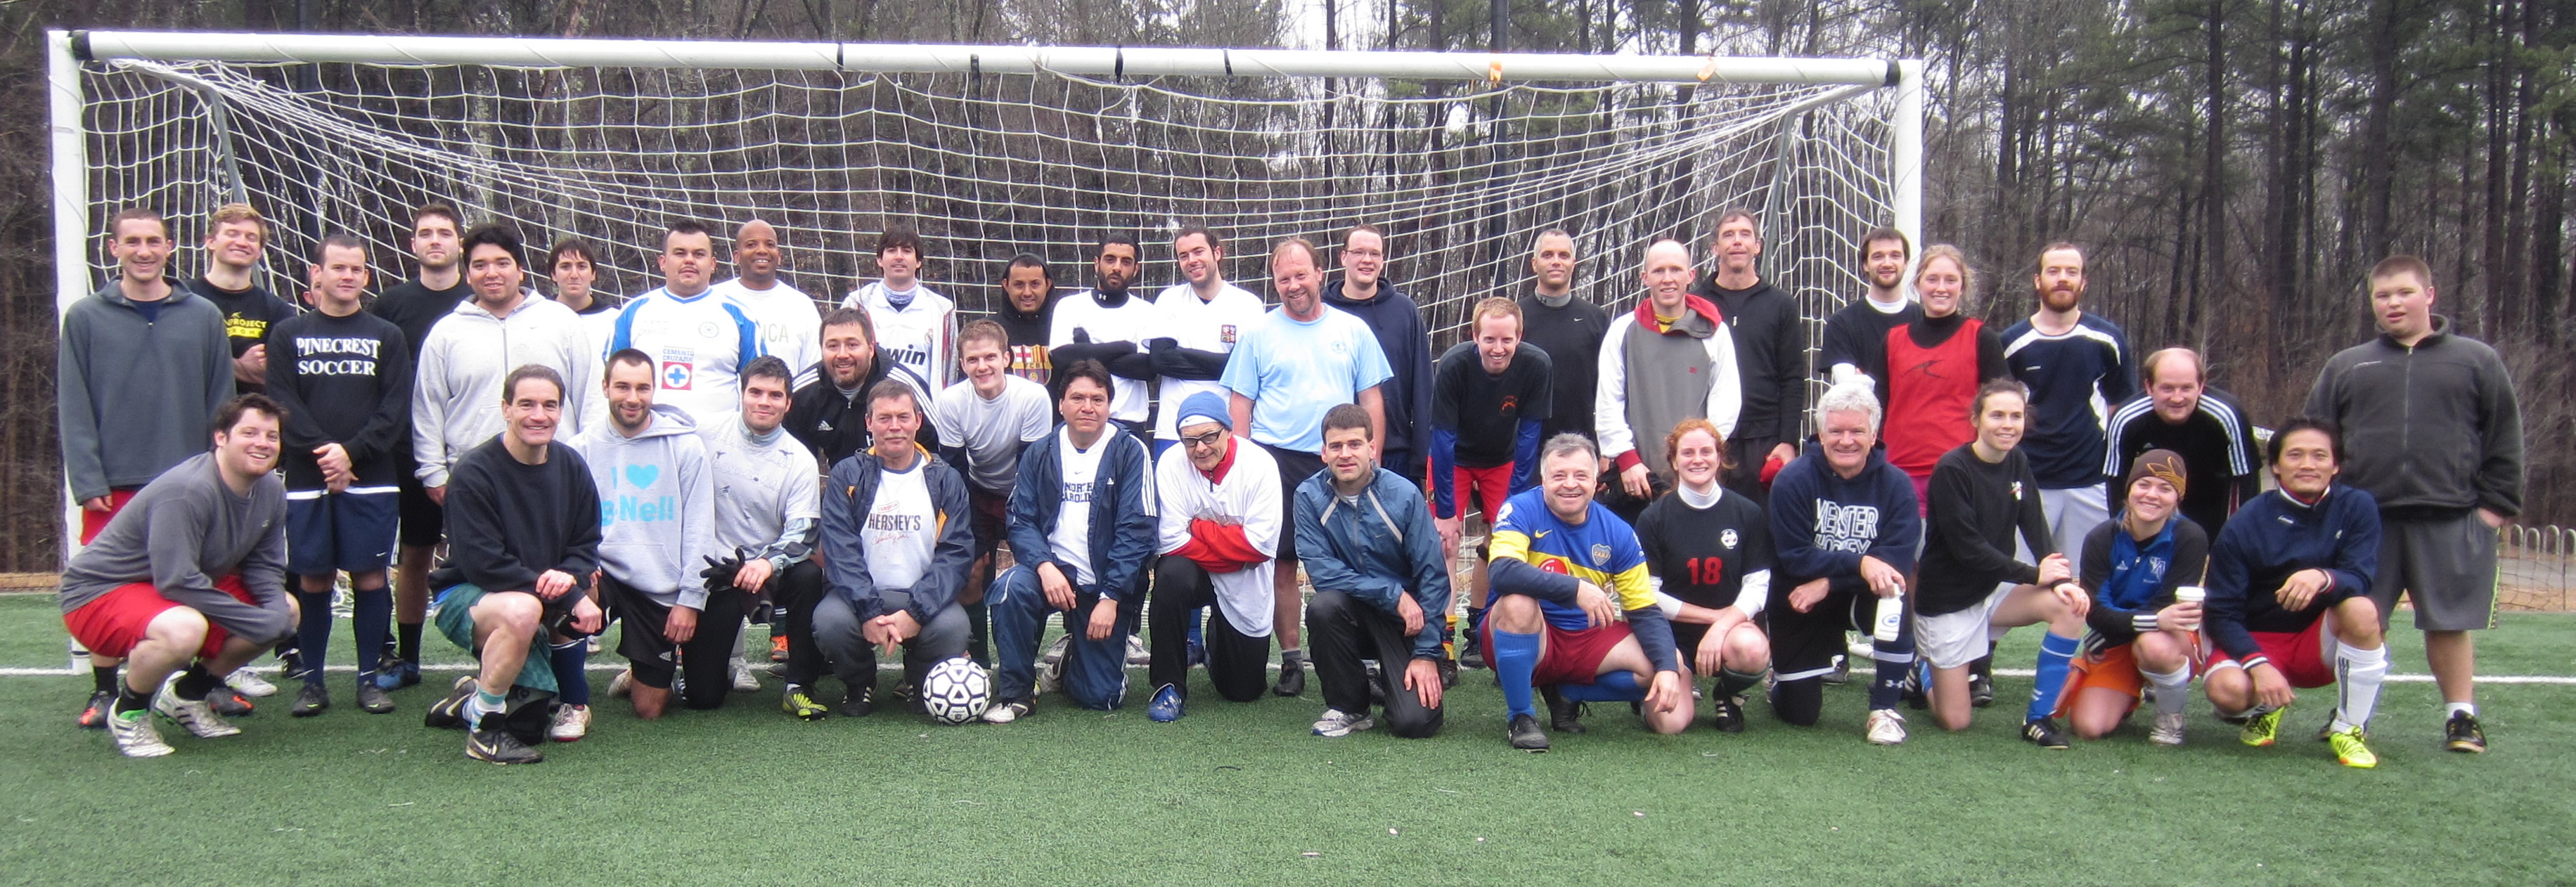 Players in the benefit tournament